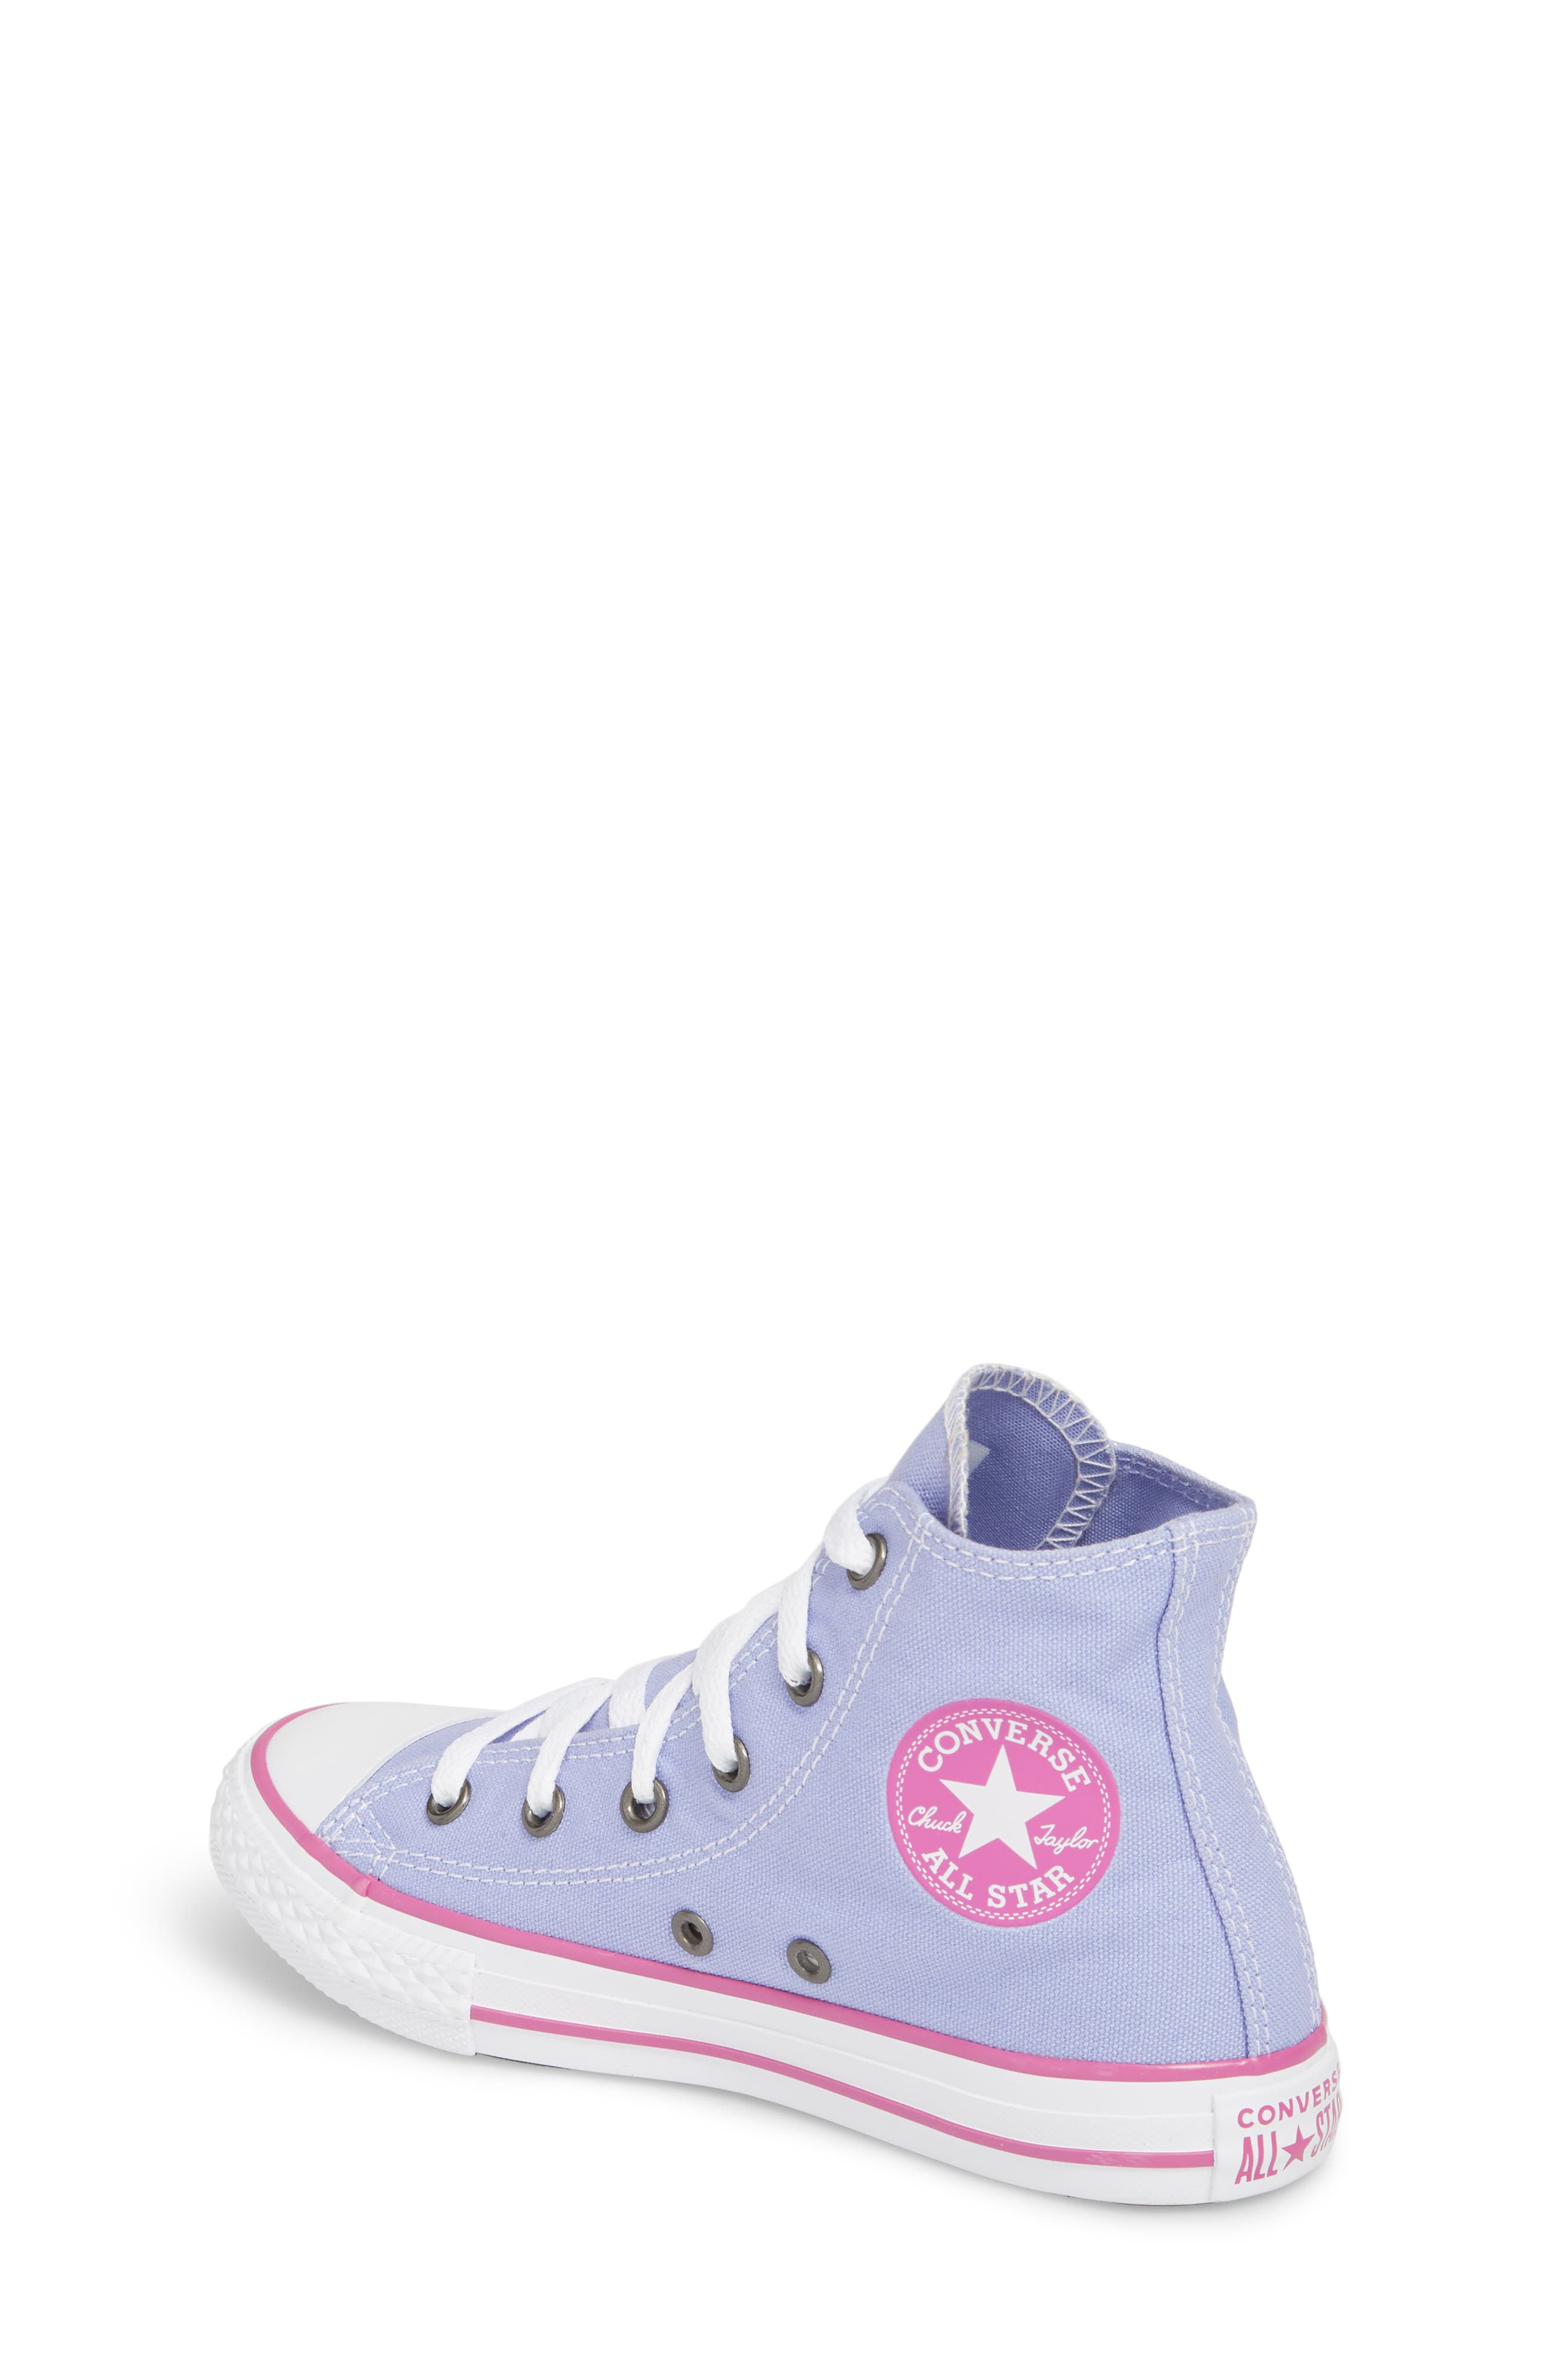 Chuck Taylor<sup>®</sup> All Star<sup>®</sup> High Top Sneaker,                             Alternate thumbnail 5, color,